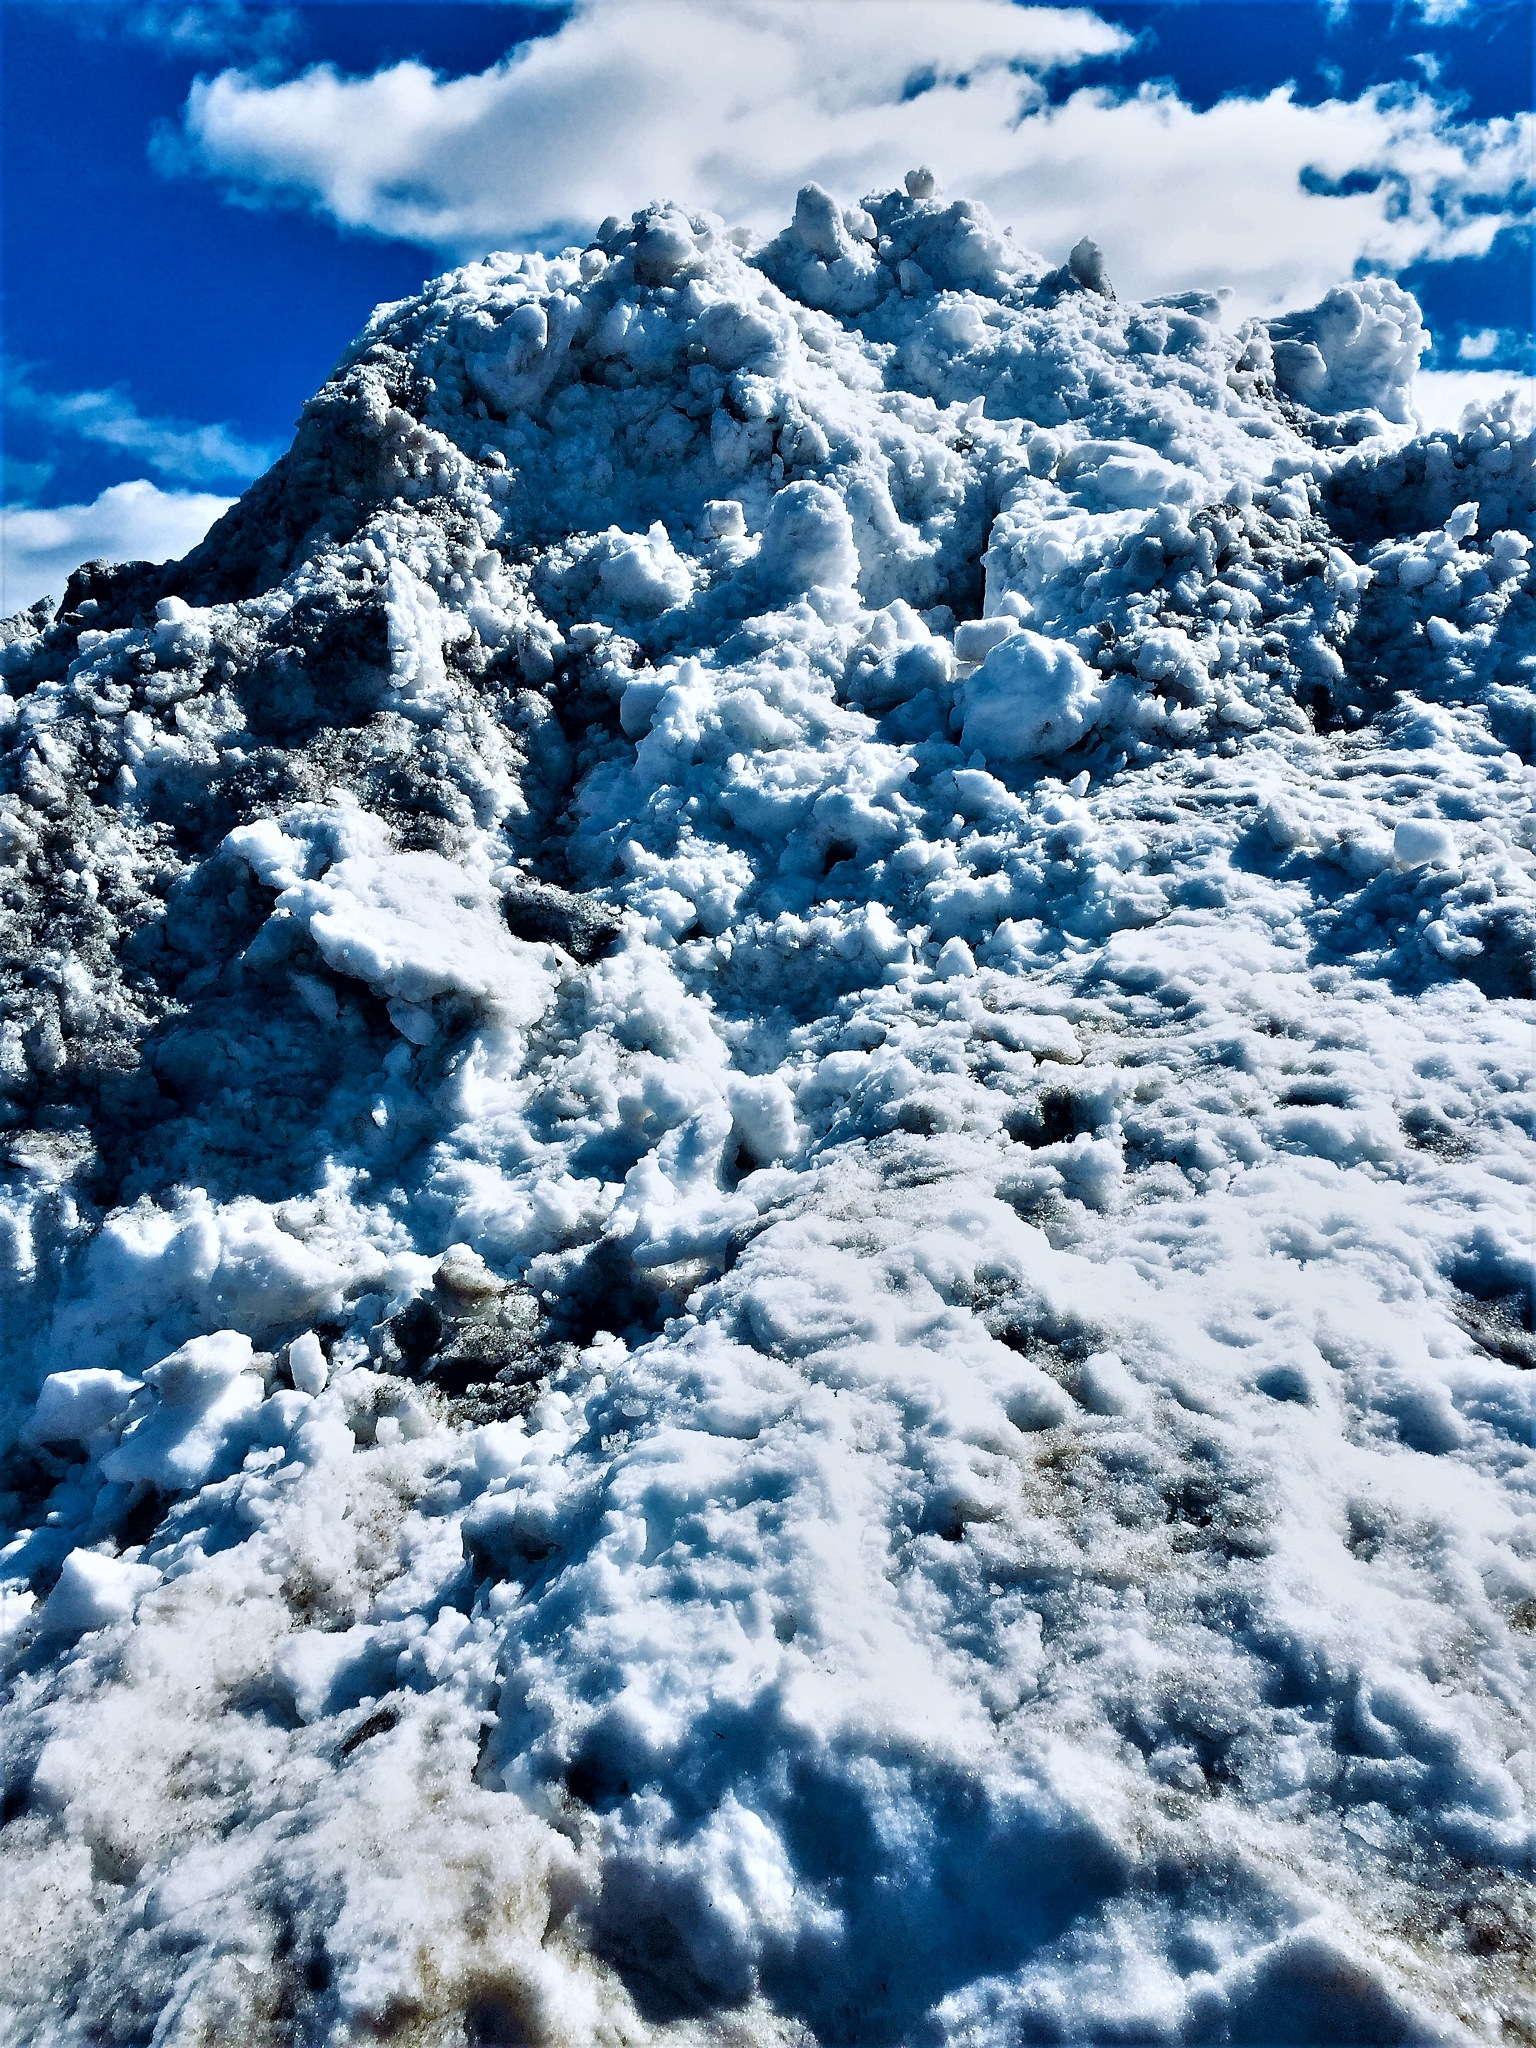 Snow Mountain  by Dshawn732